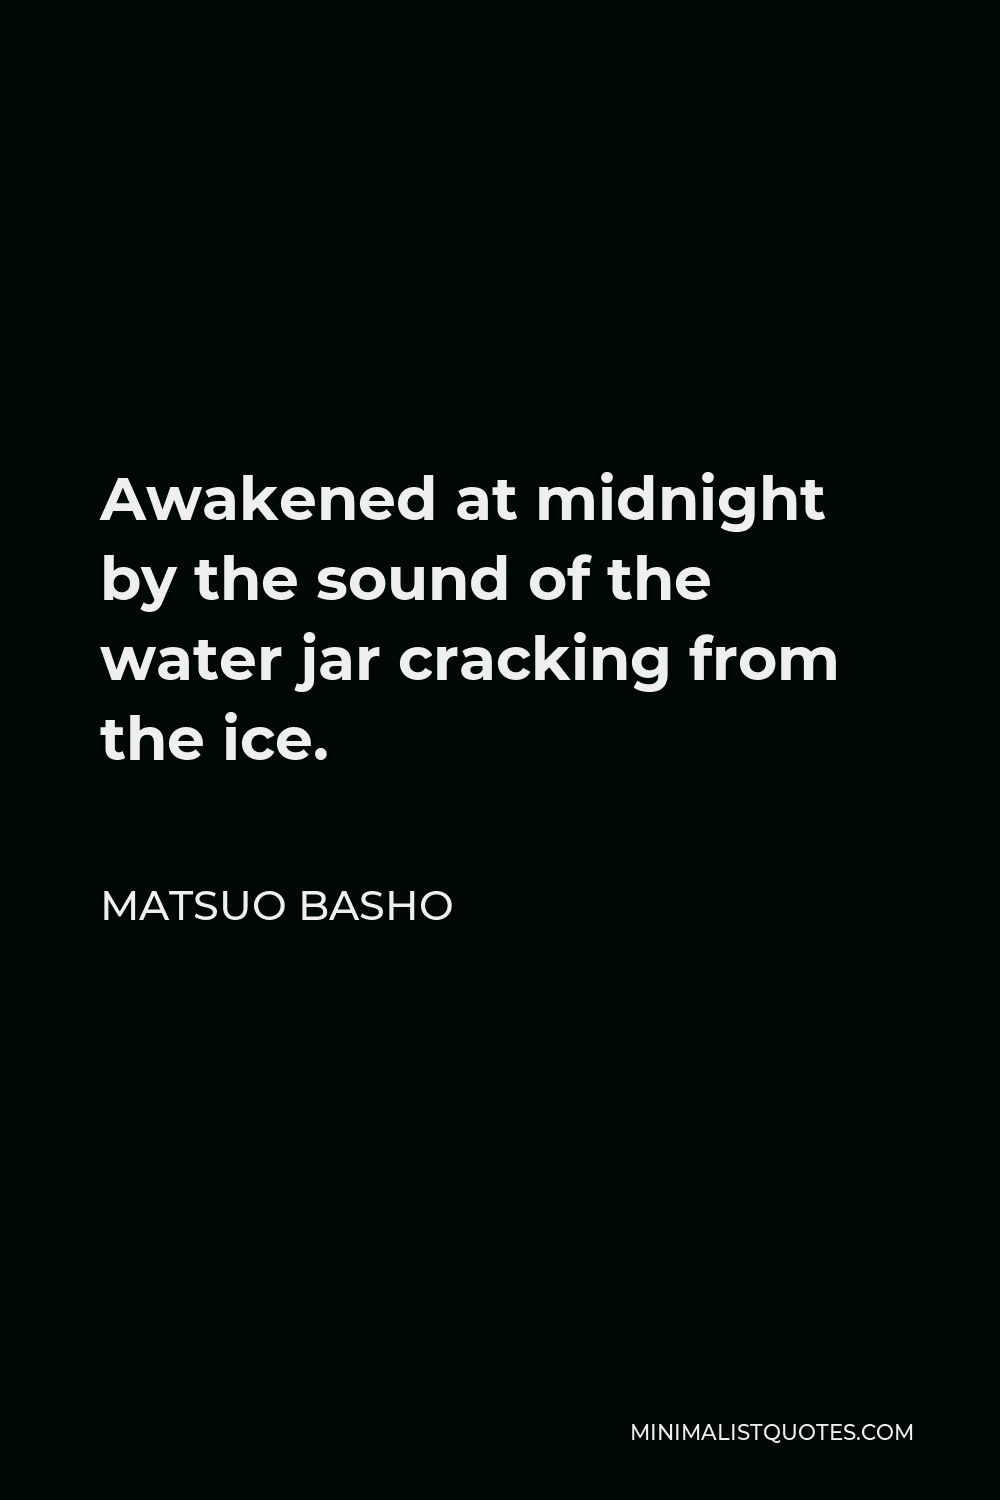 Matsuo Basho Quote - Awakened at midnight by the sound of the water jar cracking from the ice.